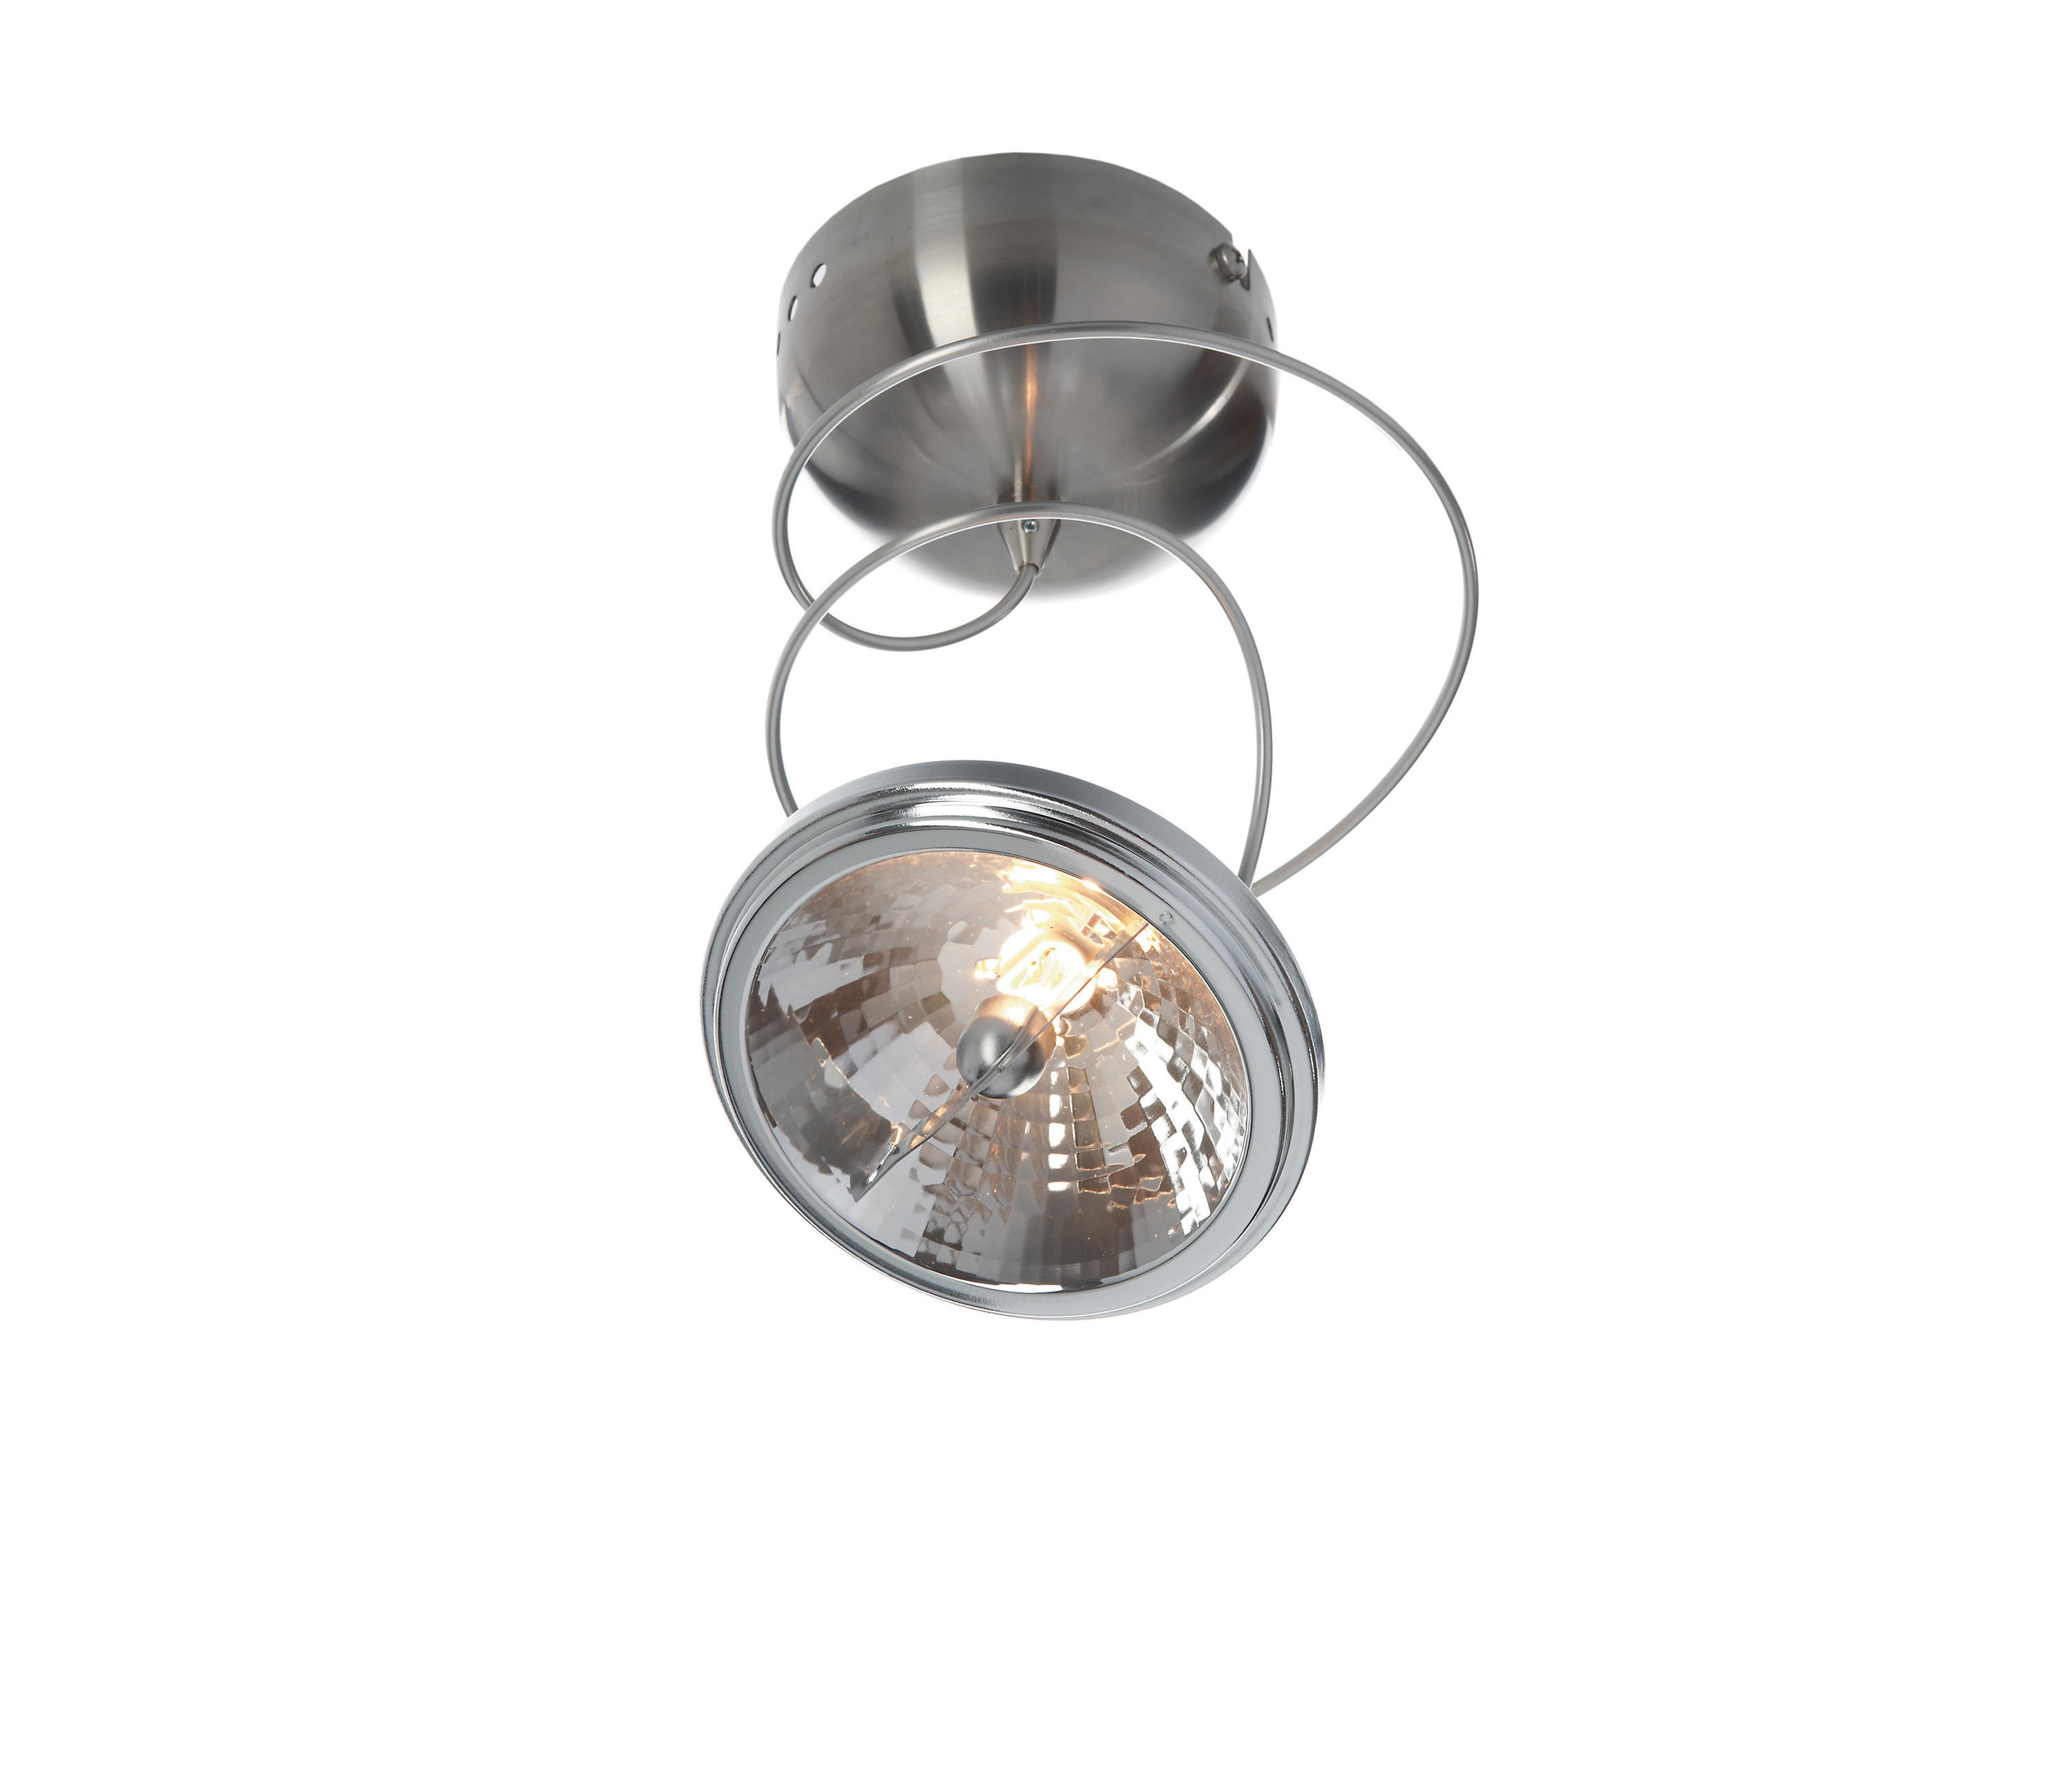 Target ceiling-/wall lamp PL 1 - General lighting by HARCO LOOR Architonic